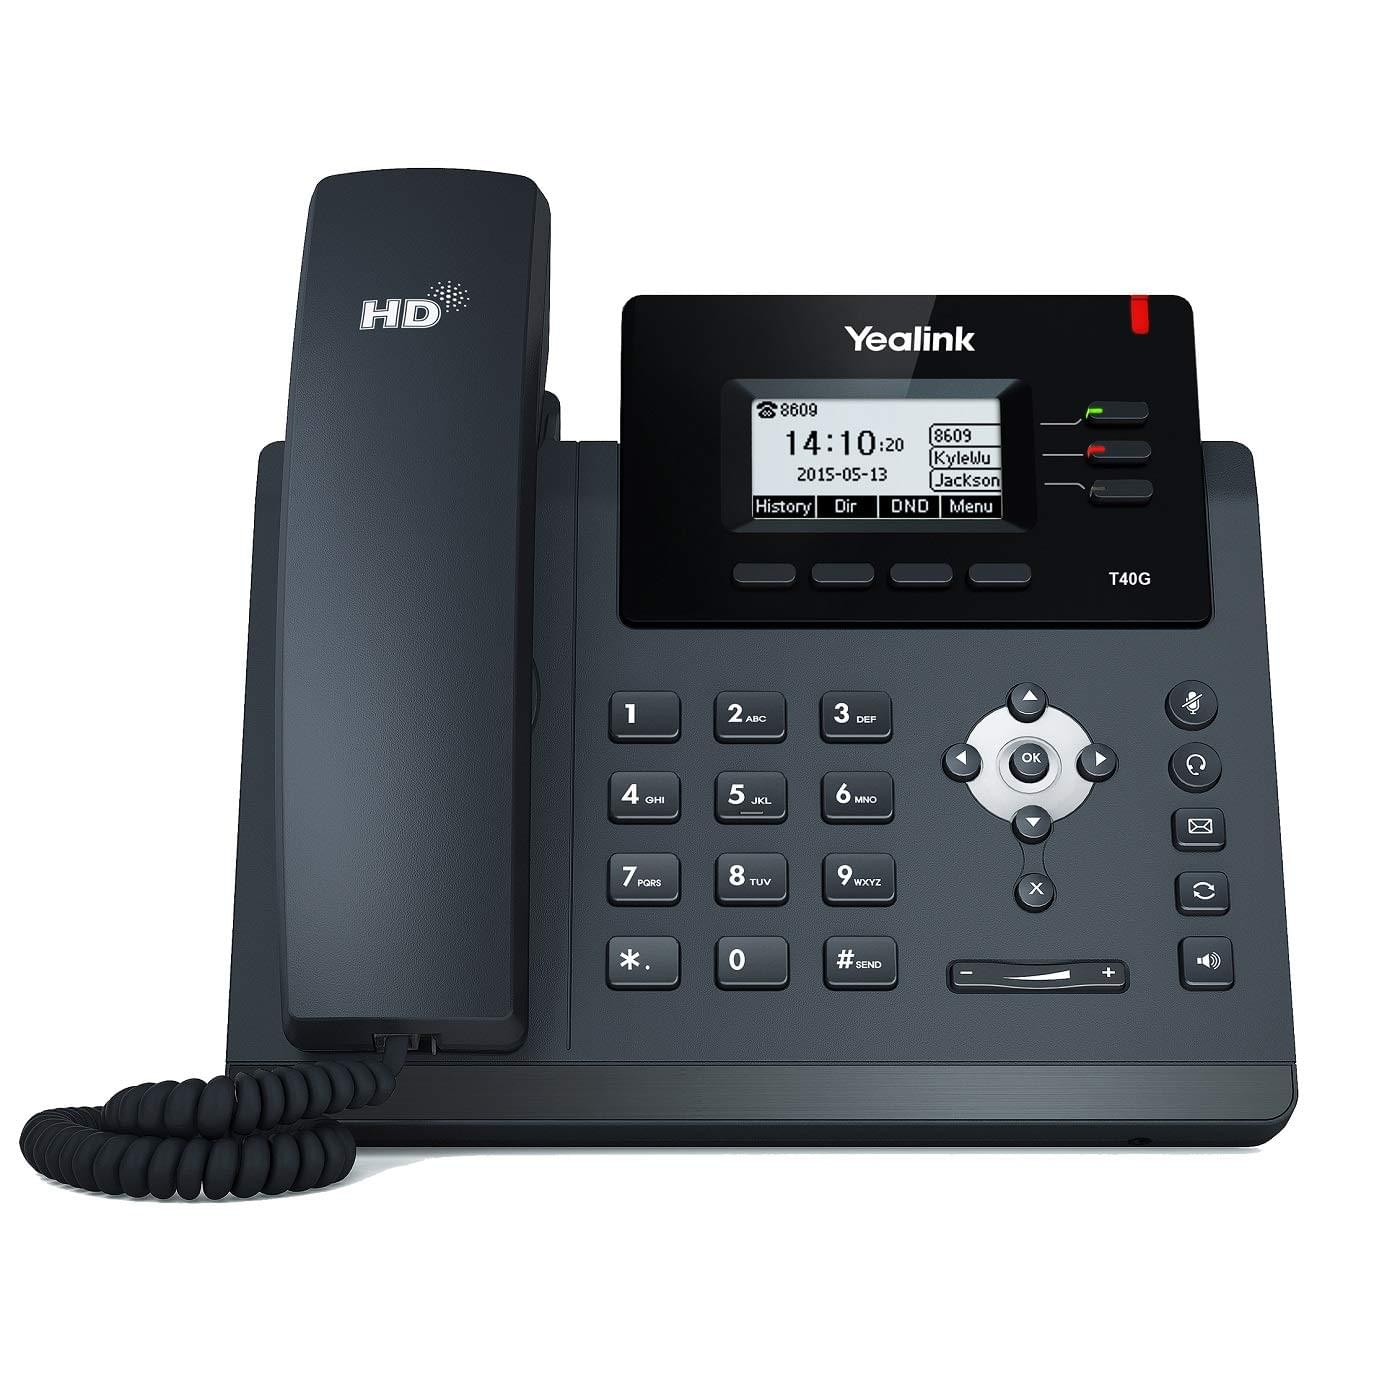 Yealink 3 line business voip phone